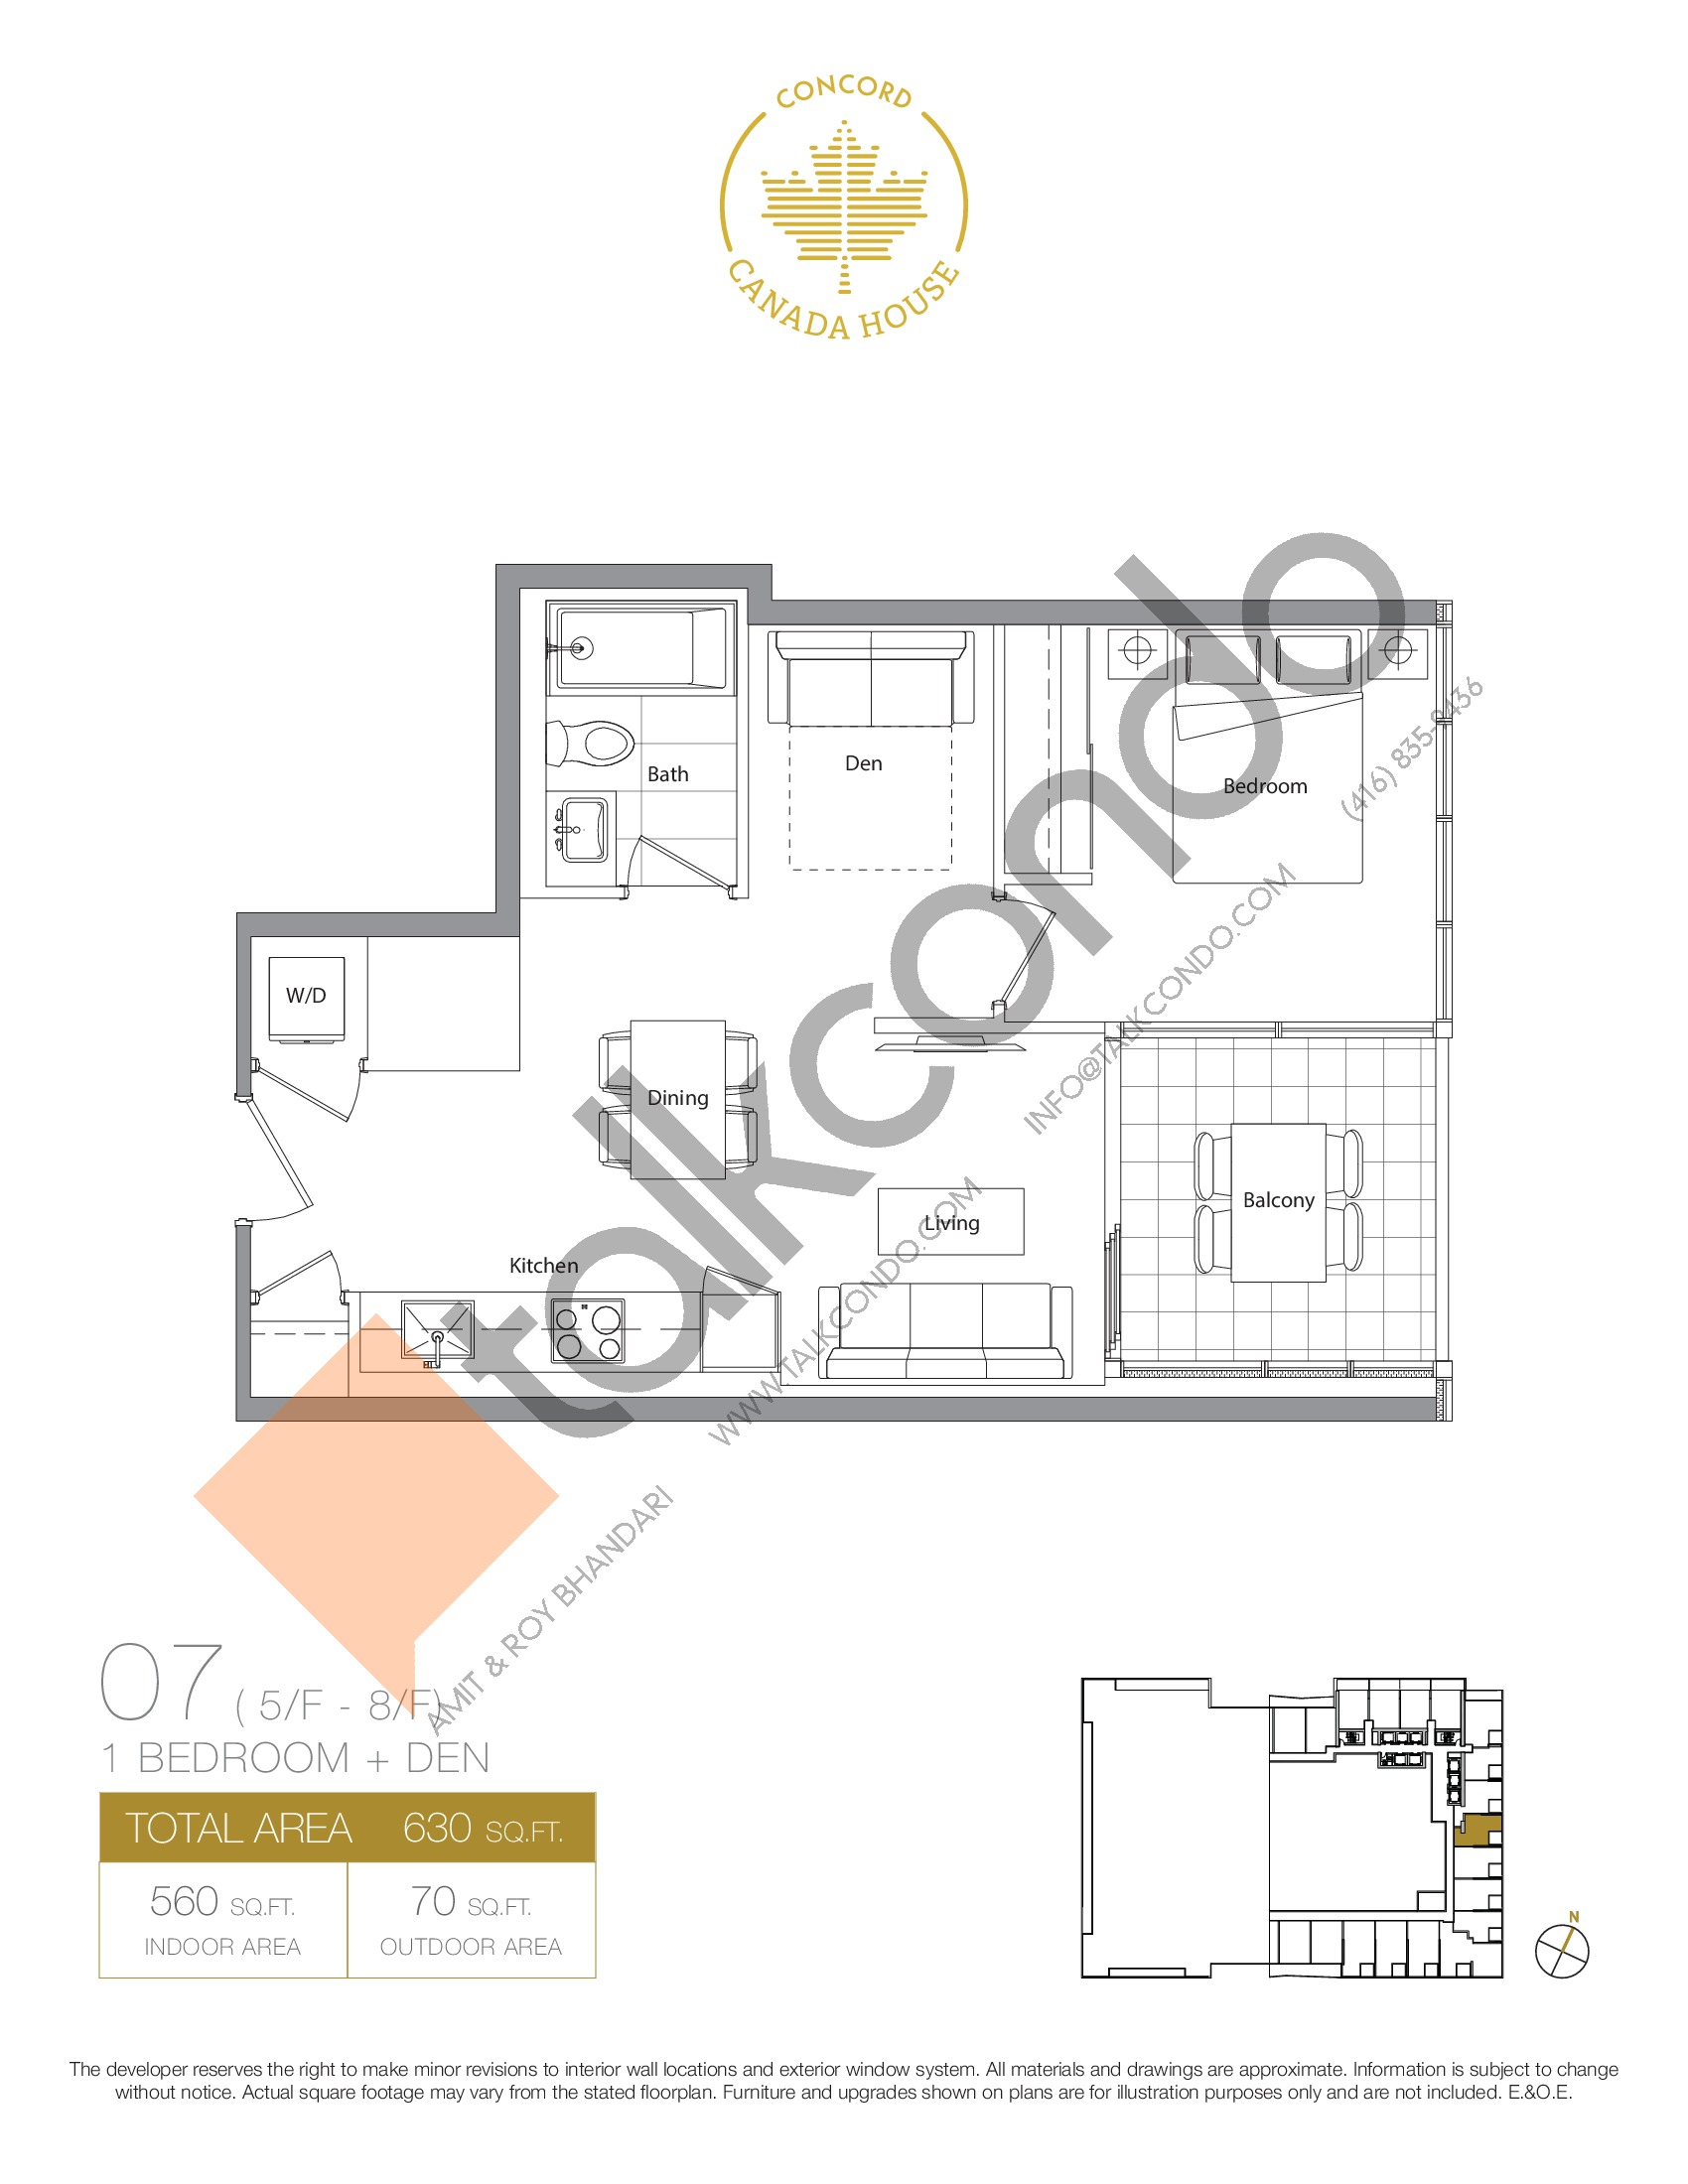 07 - West Tower Floor Plan at Concord Canada House Condos - 560 sq.ft